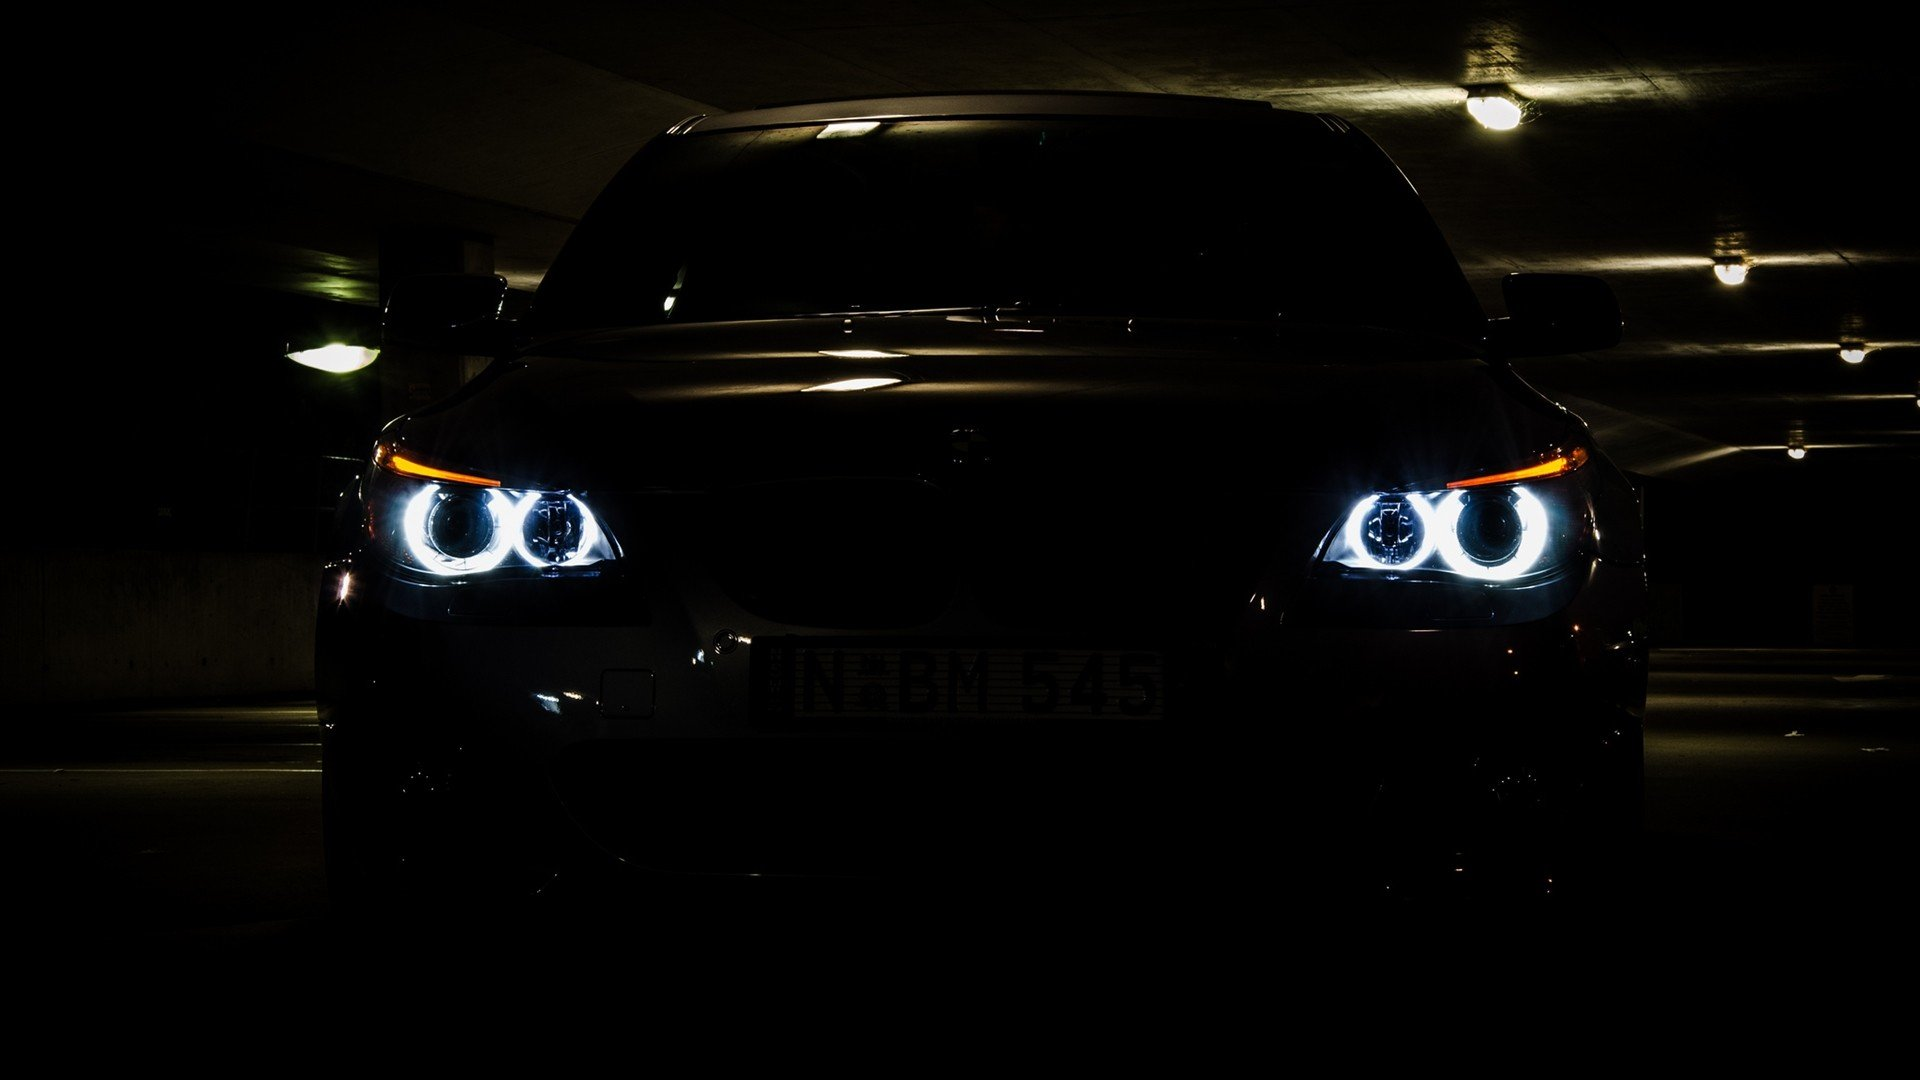 Bmw Lights Cars Vehicles Bmw 5 Series Bmw E60 Automobile